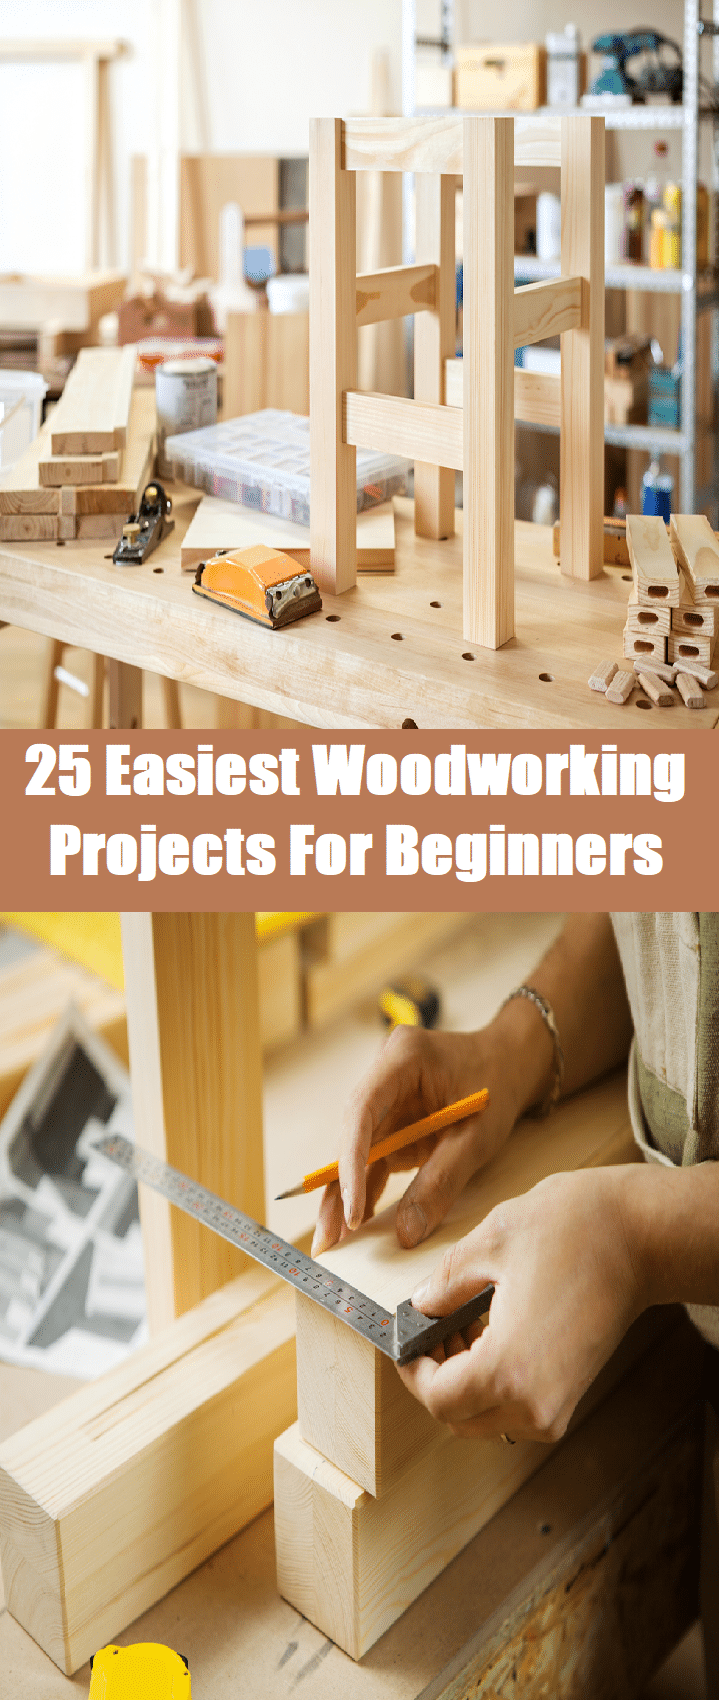 25 Easiest Woodworking Projects For Beginners Beginner Woodworking Projects Easy Woodworking Projects Woodworking Projects That Sell